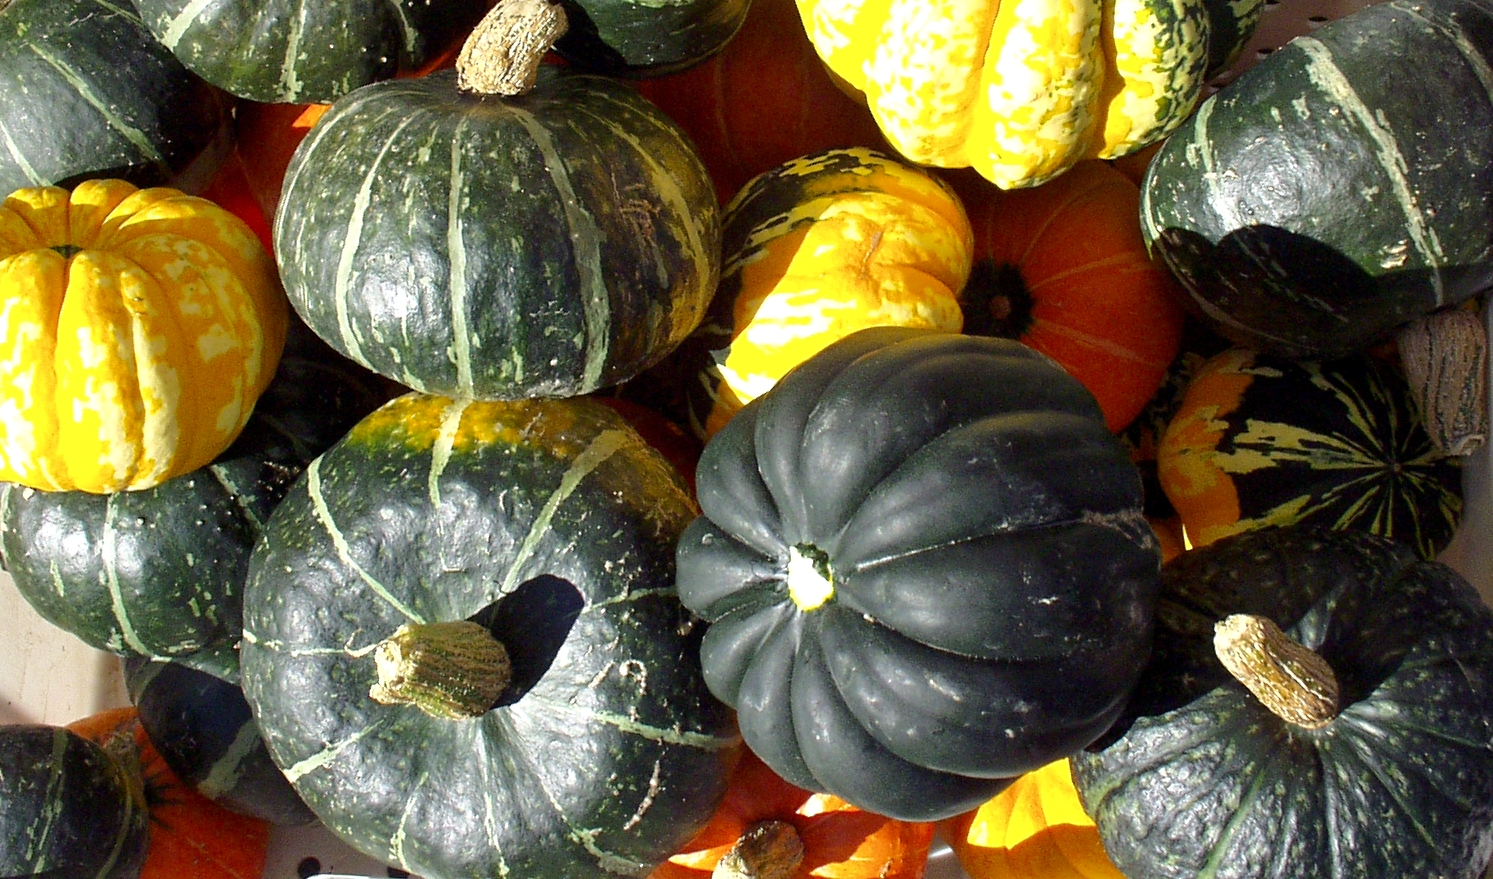 Winter squash from Growing Things. Photo copyright 2009 by Zachary D. Lyons.